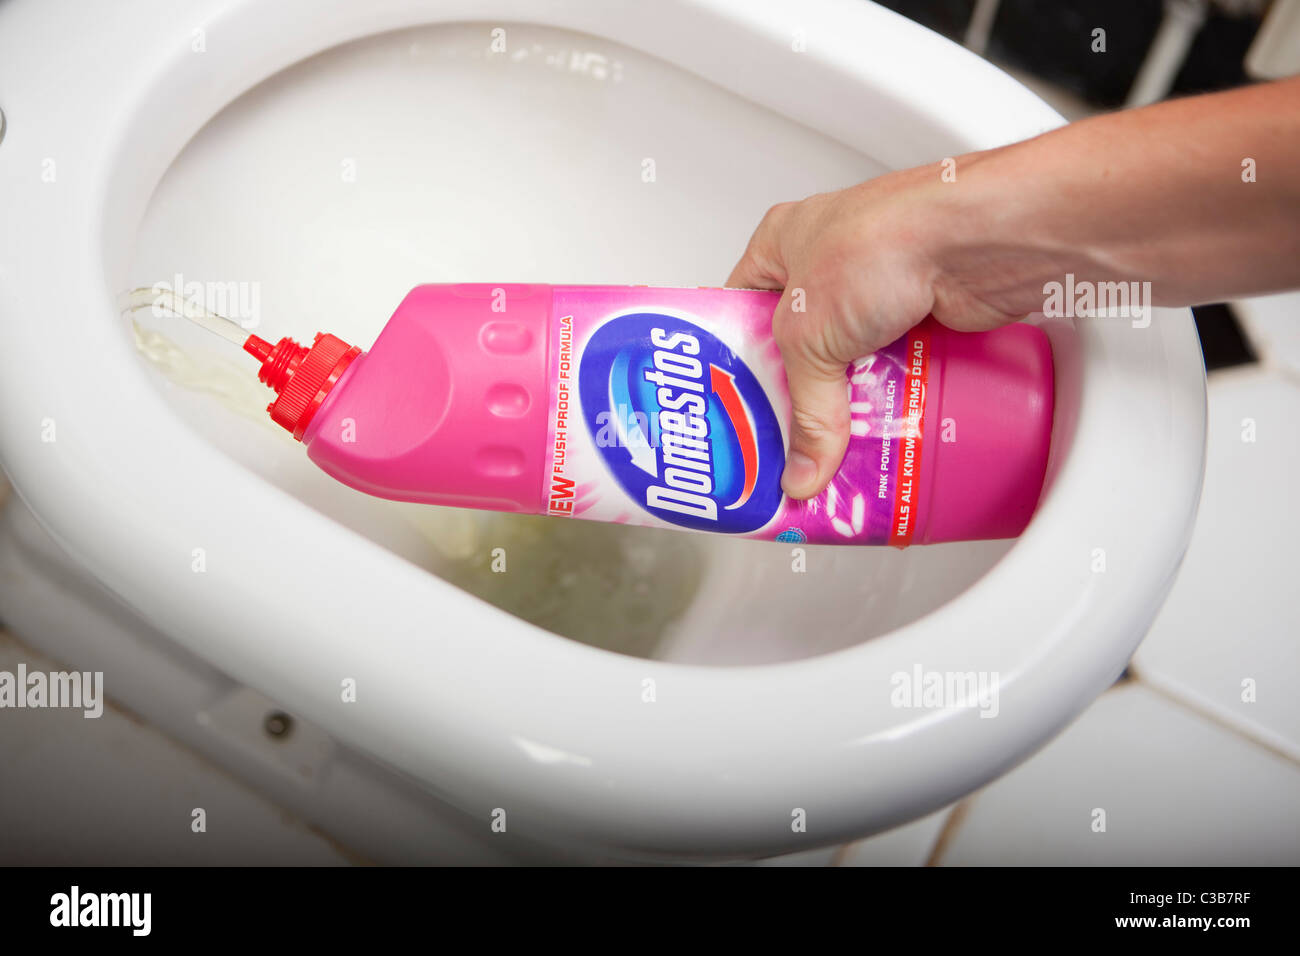 Illustrative image of a Domestos bleach bottle - Stock Image